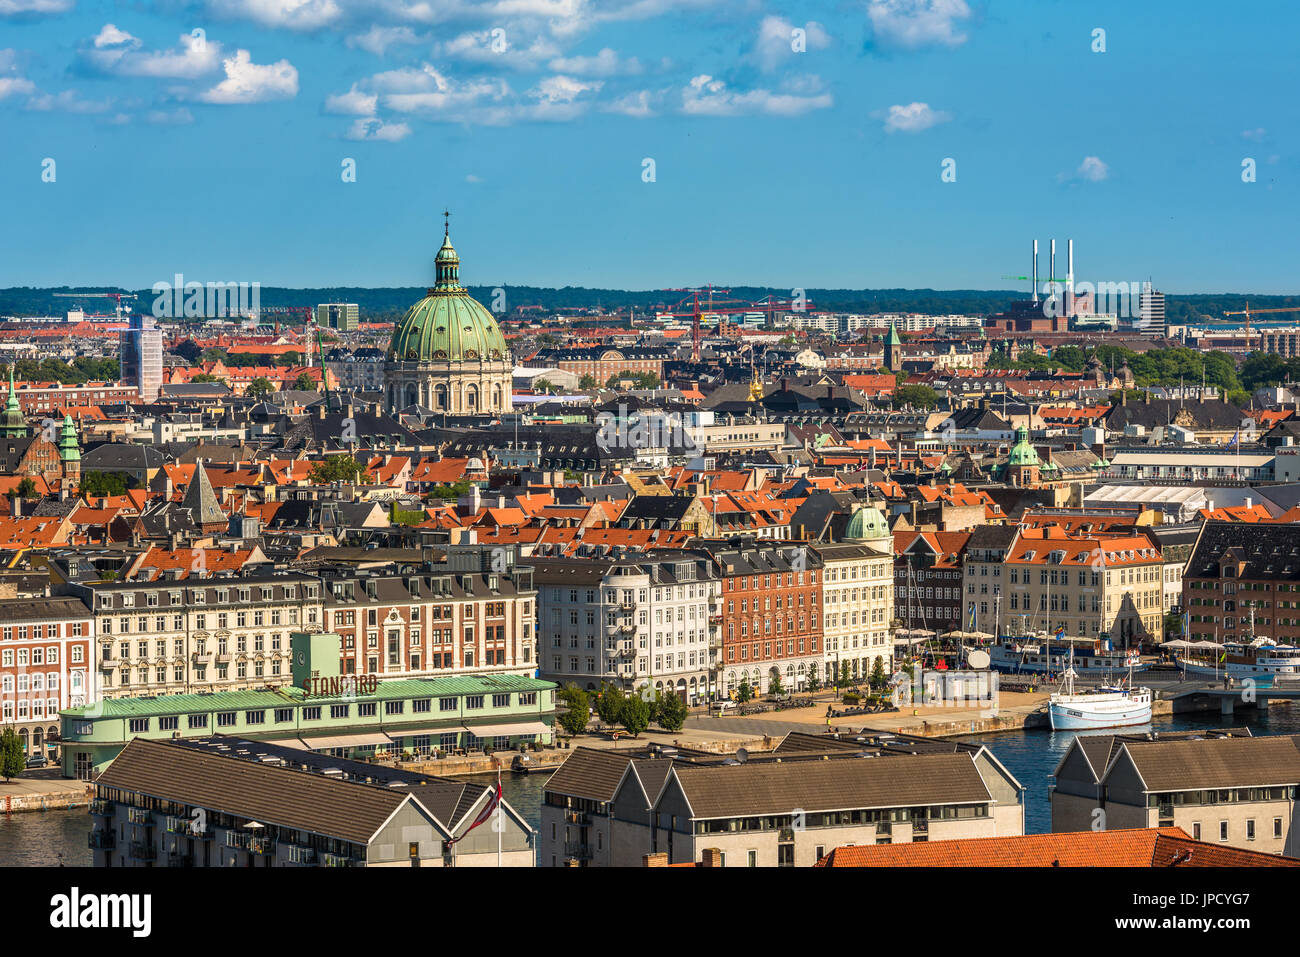 Aerial view of Copenhagen city center, Denmark - Stock Image